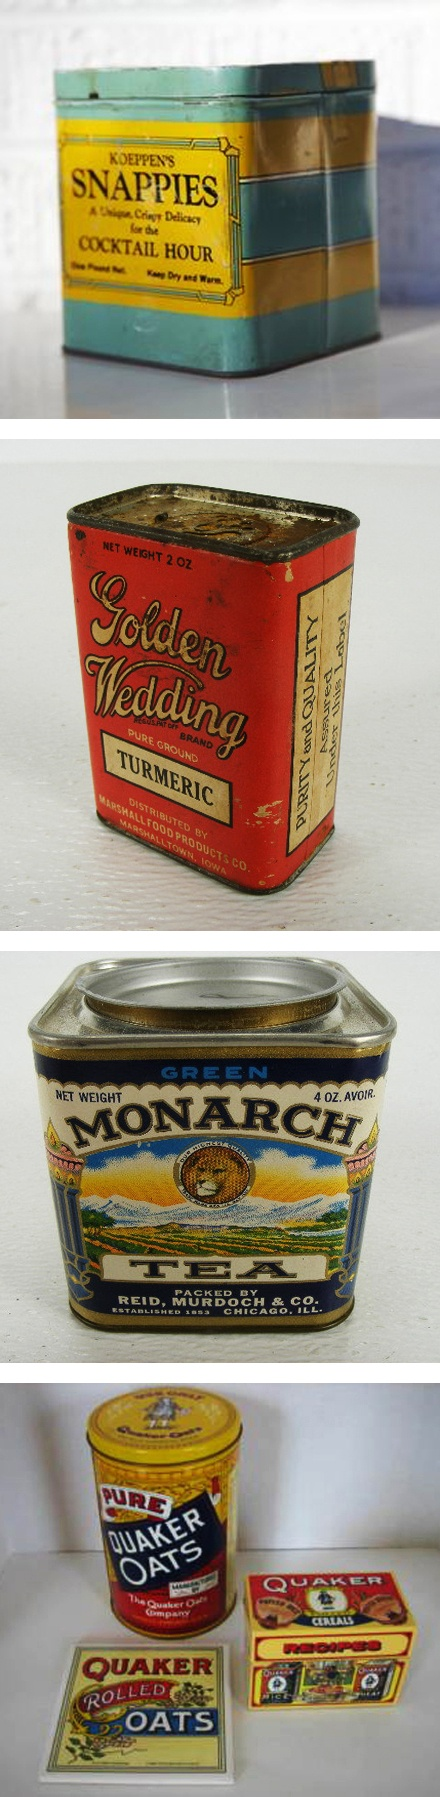 634 best vintage tins metal containers images on pinterest vintage tins wow